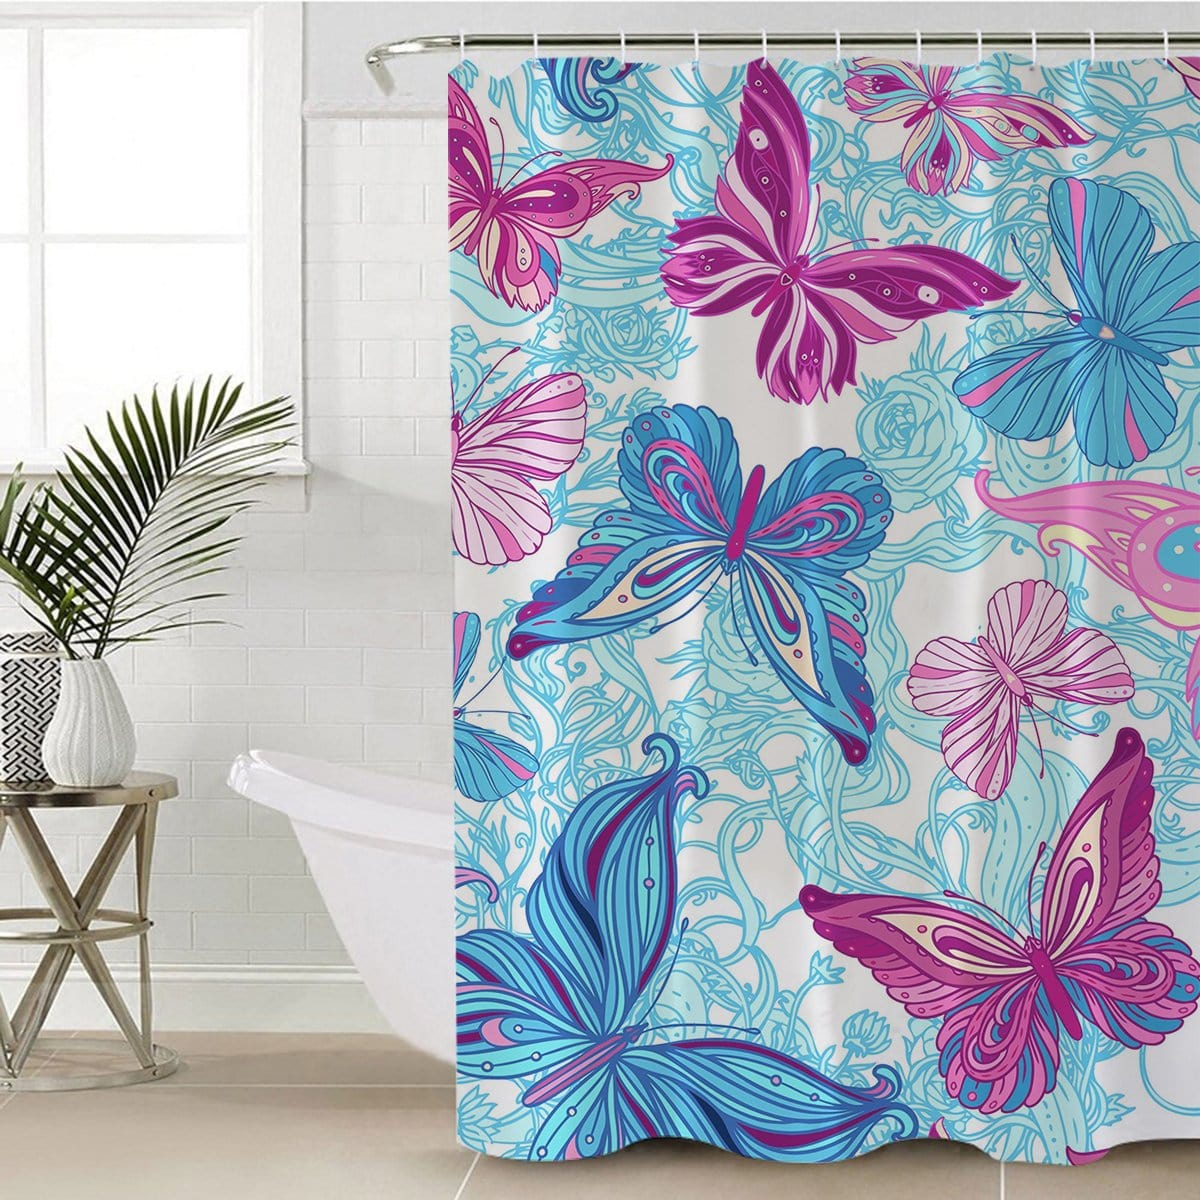 Pastel Butterflies Shower Curtain-Pastel Butterflies-Little Squiffy